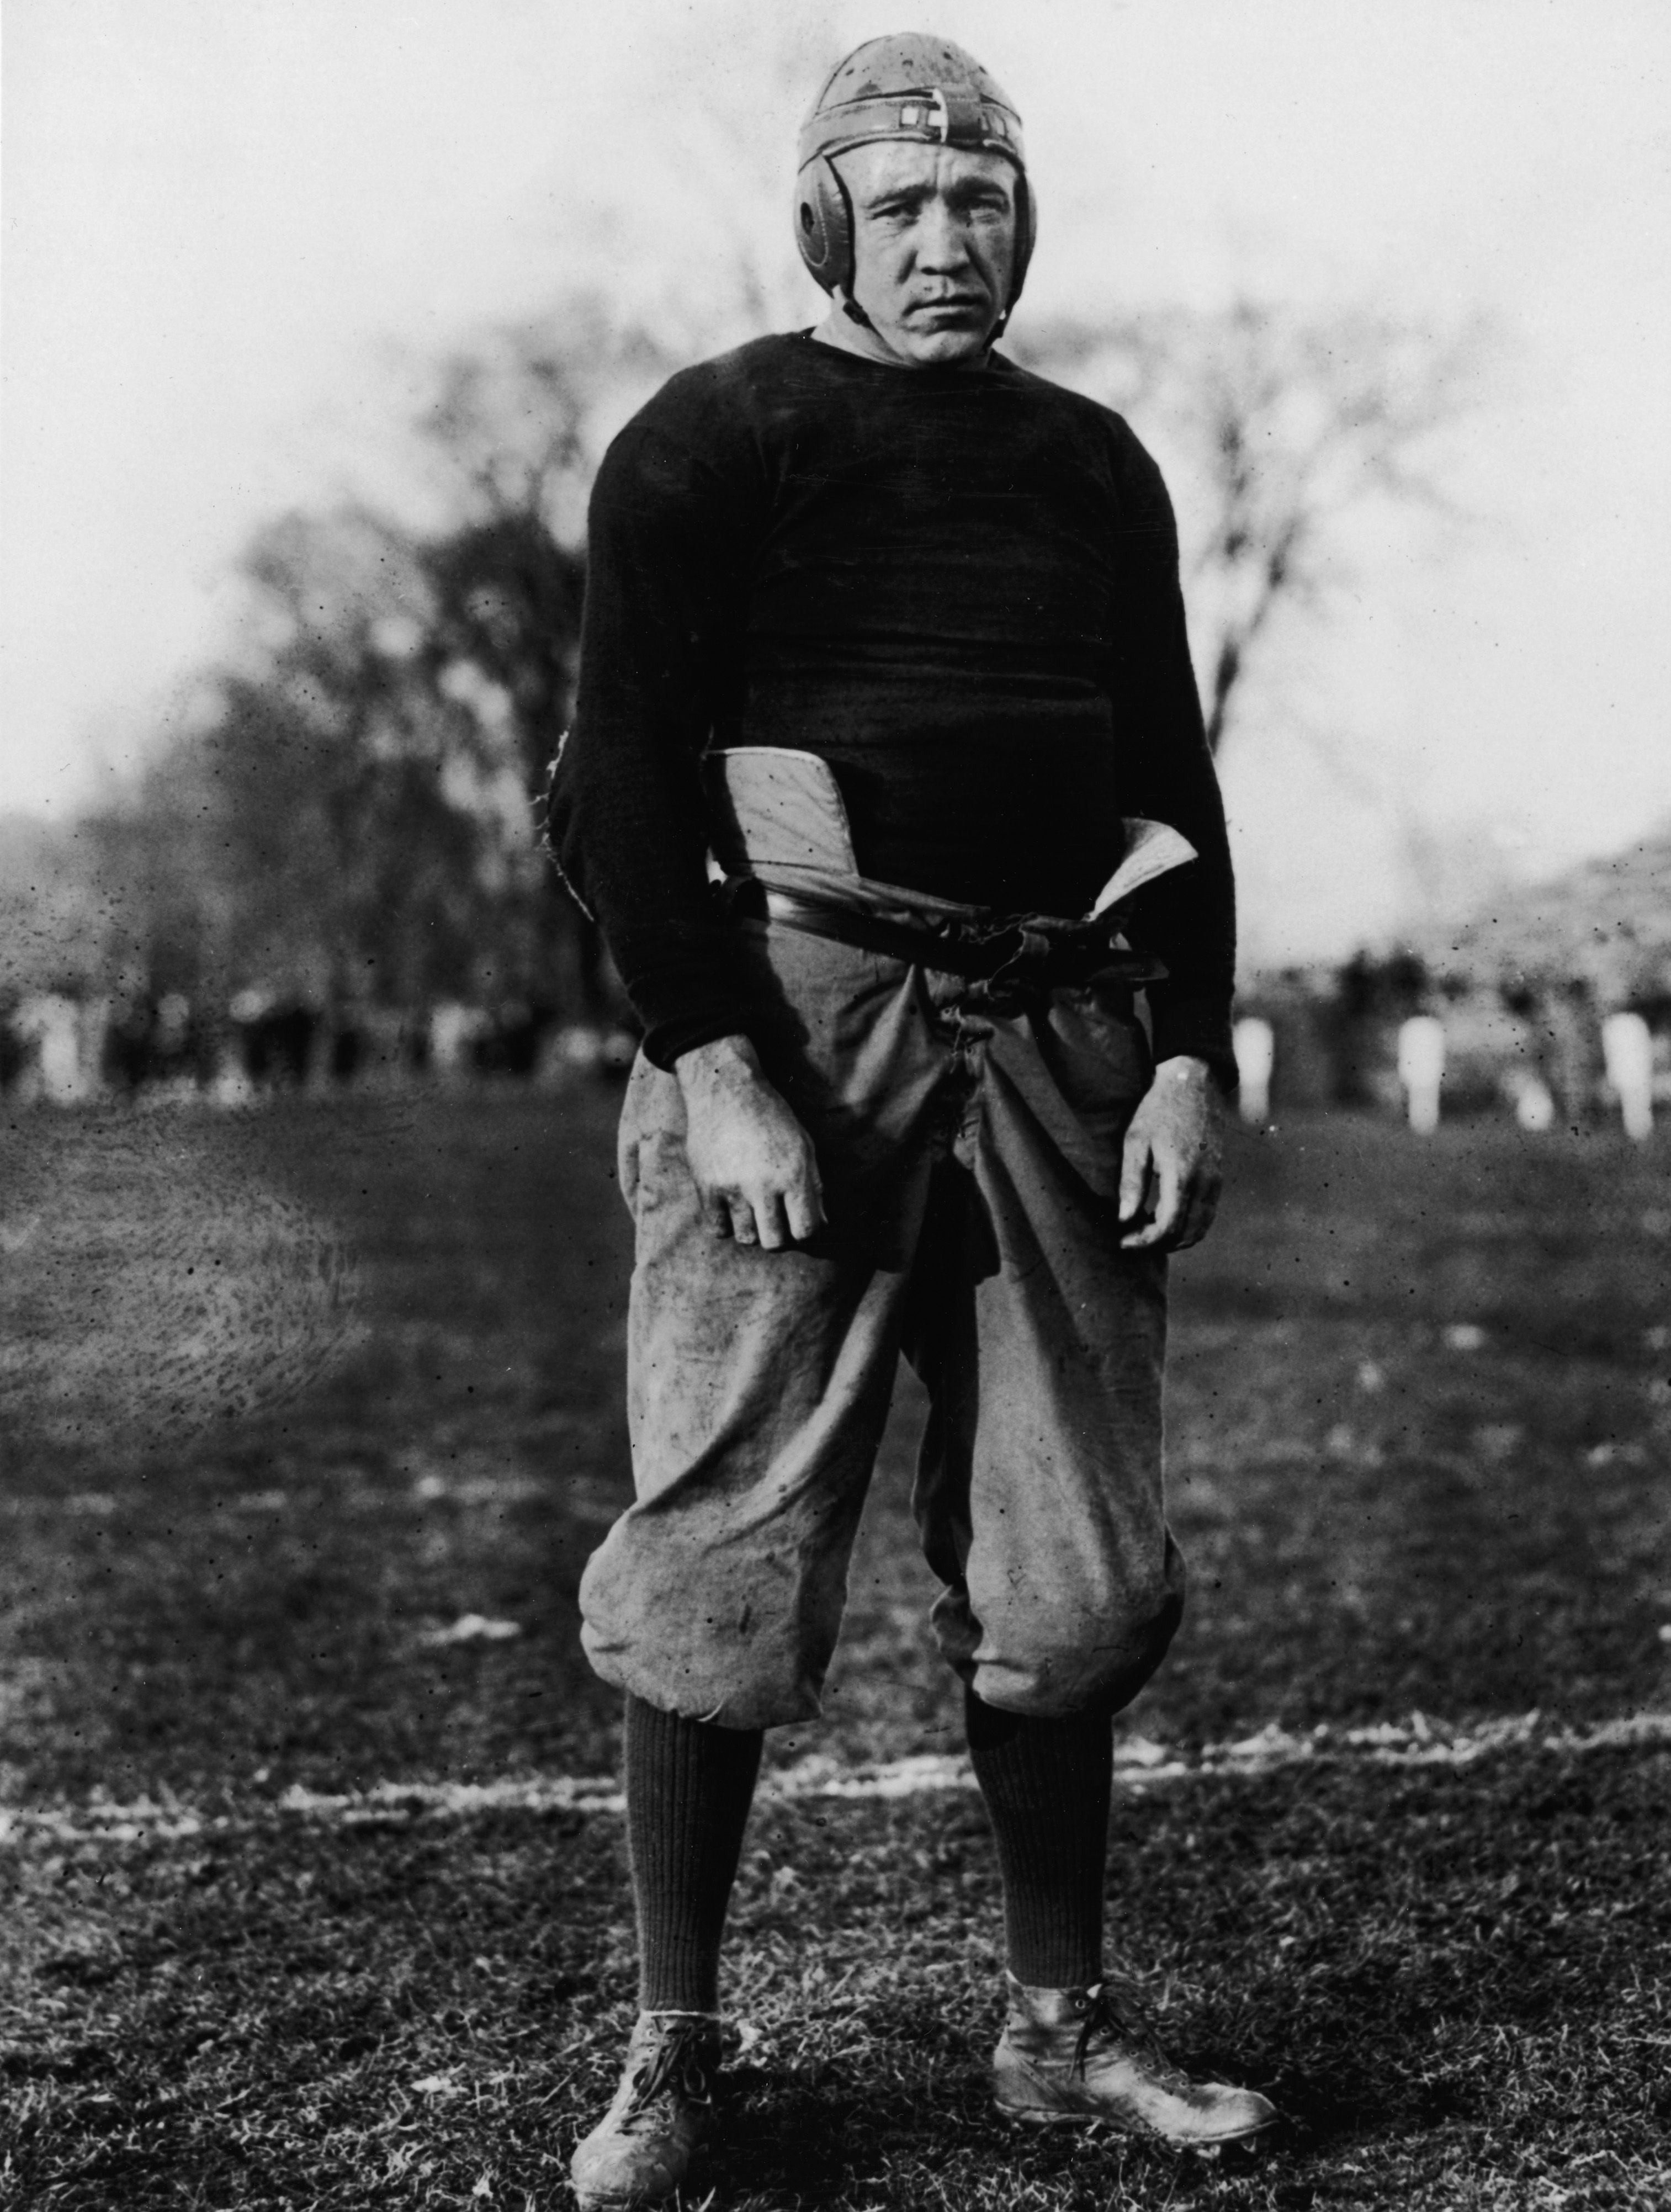 American football player and coach knute rockne 1888